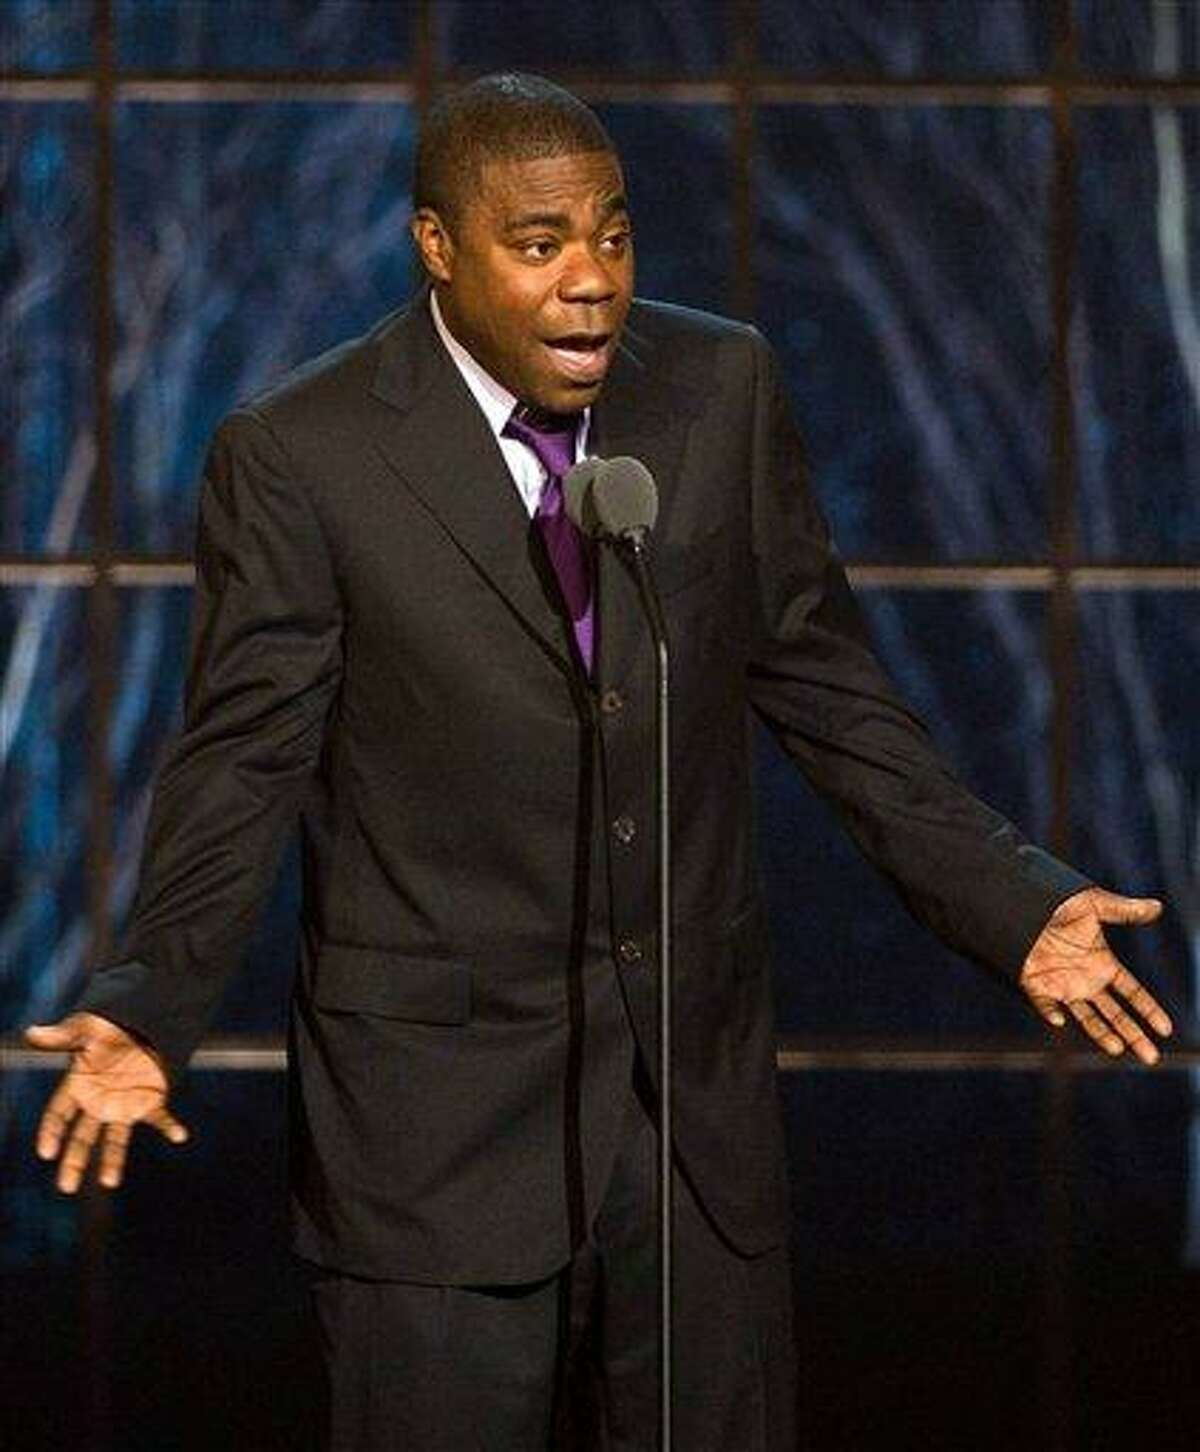 In this file photo, actor and comedian Tracy Morgan appears onstage at the ?The Comedy Awards? presented by Comedy Central in New York. Morgan says he's sorry for telling an audience that he would